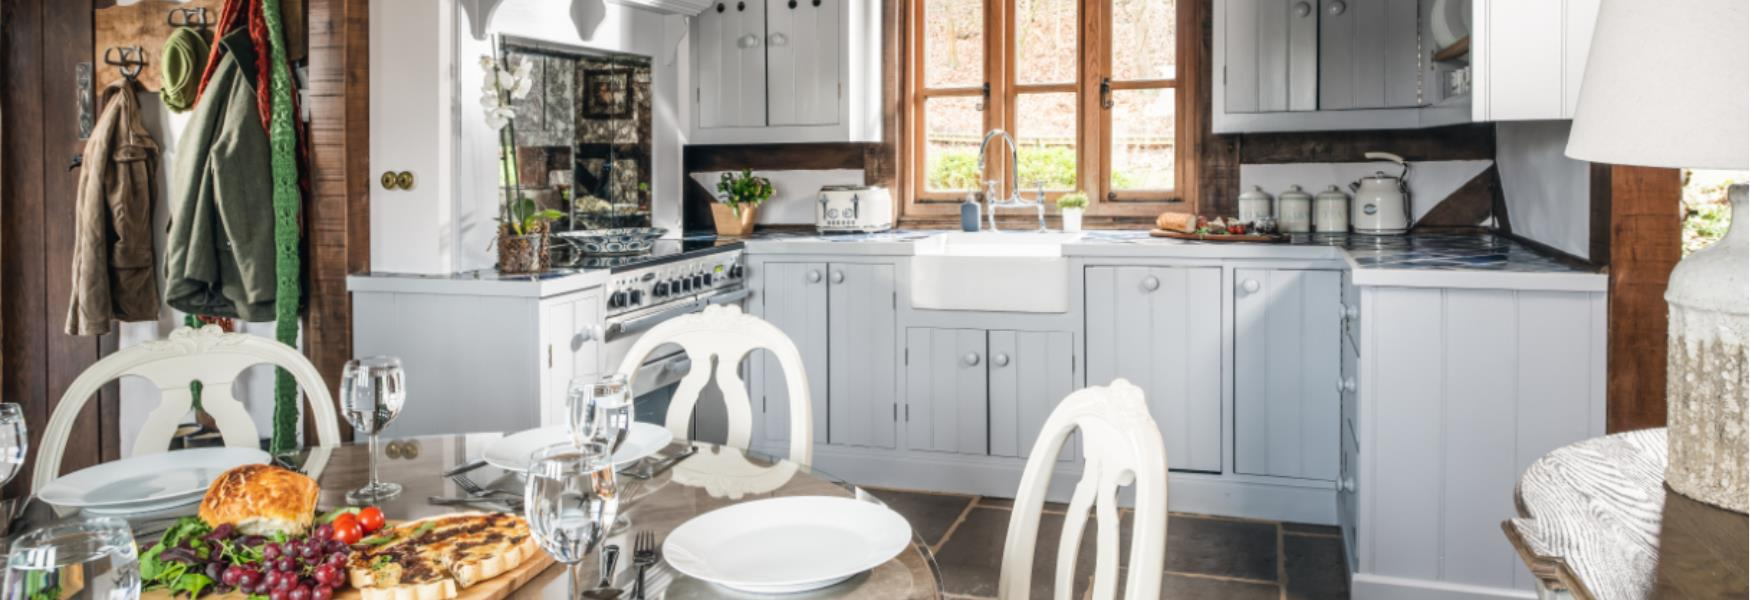 self catering kitchen at undercastle cottage in the new forest